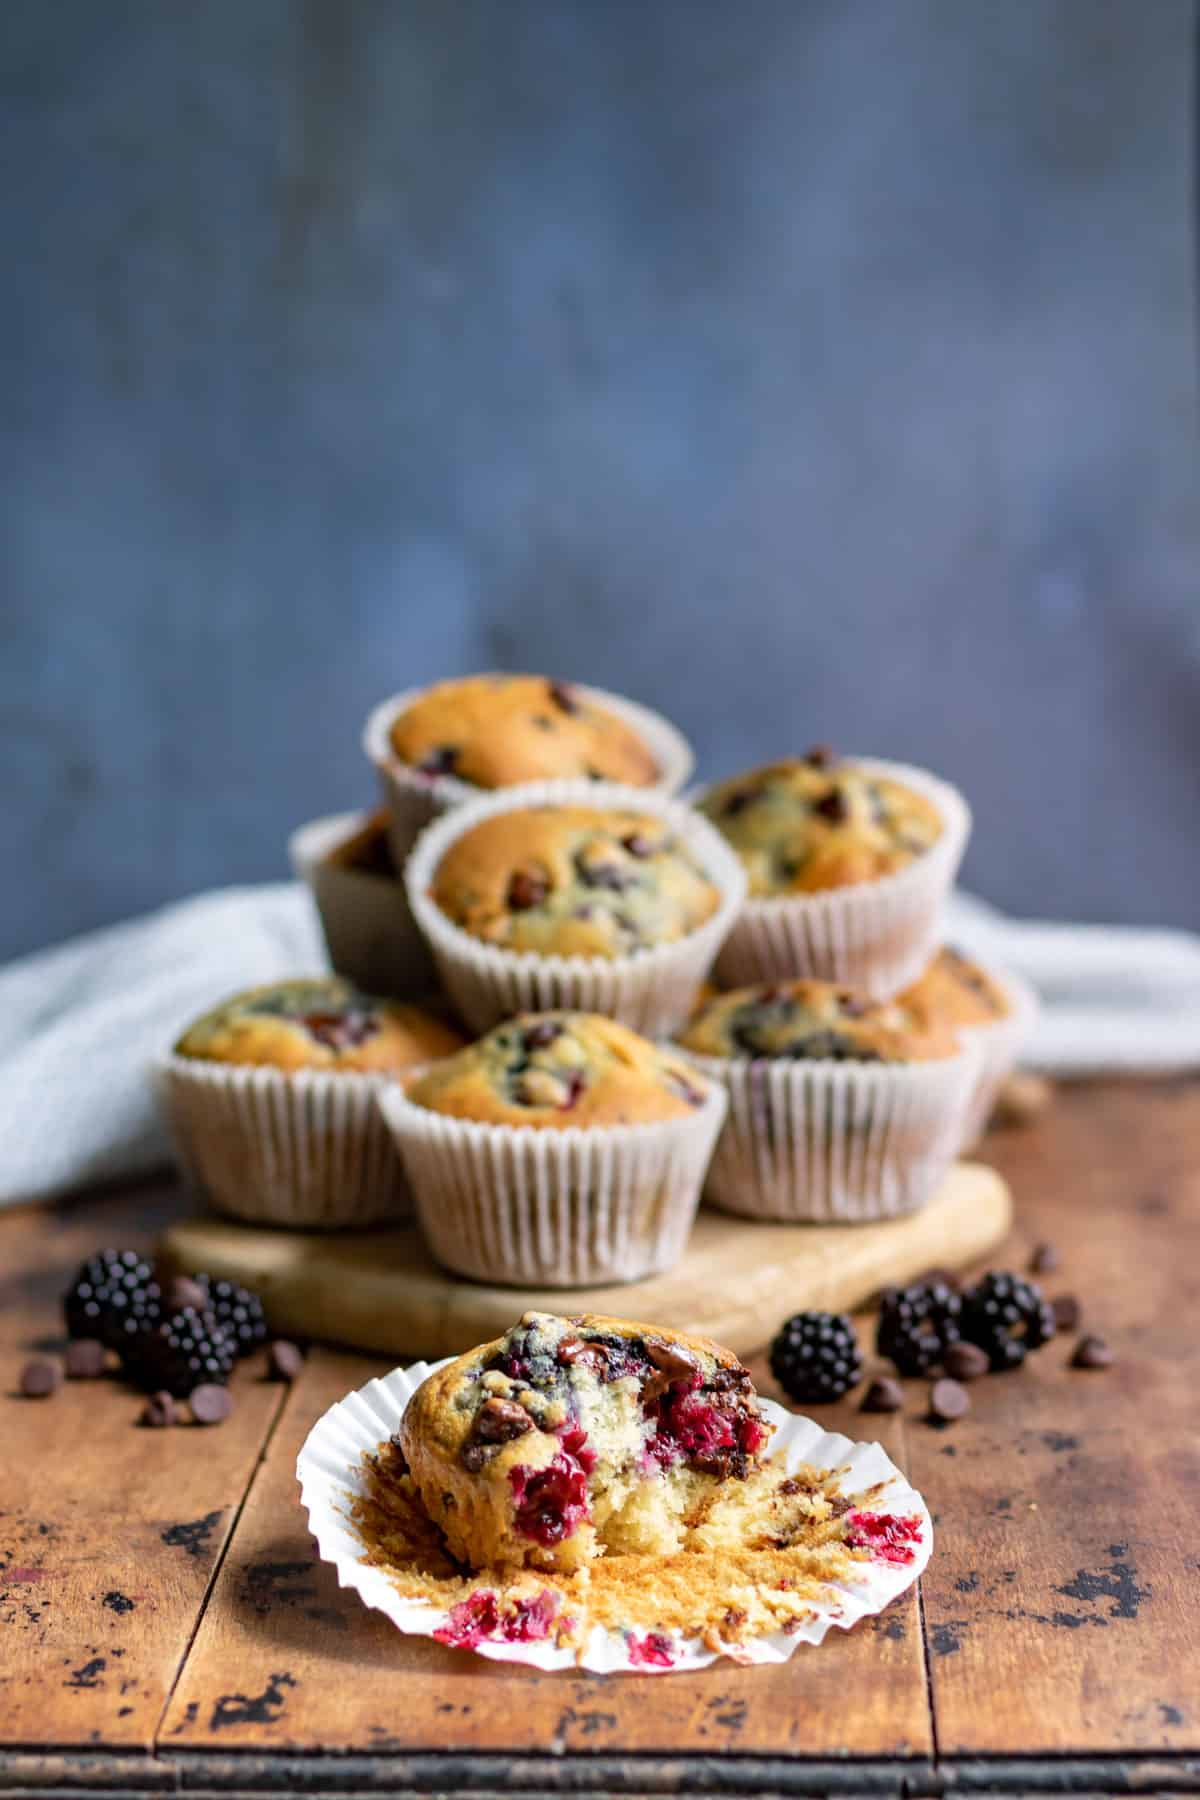 A pile of muffins with one in front with a bite out.